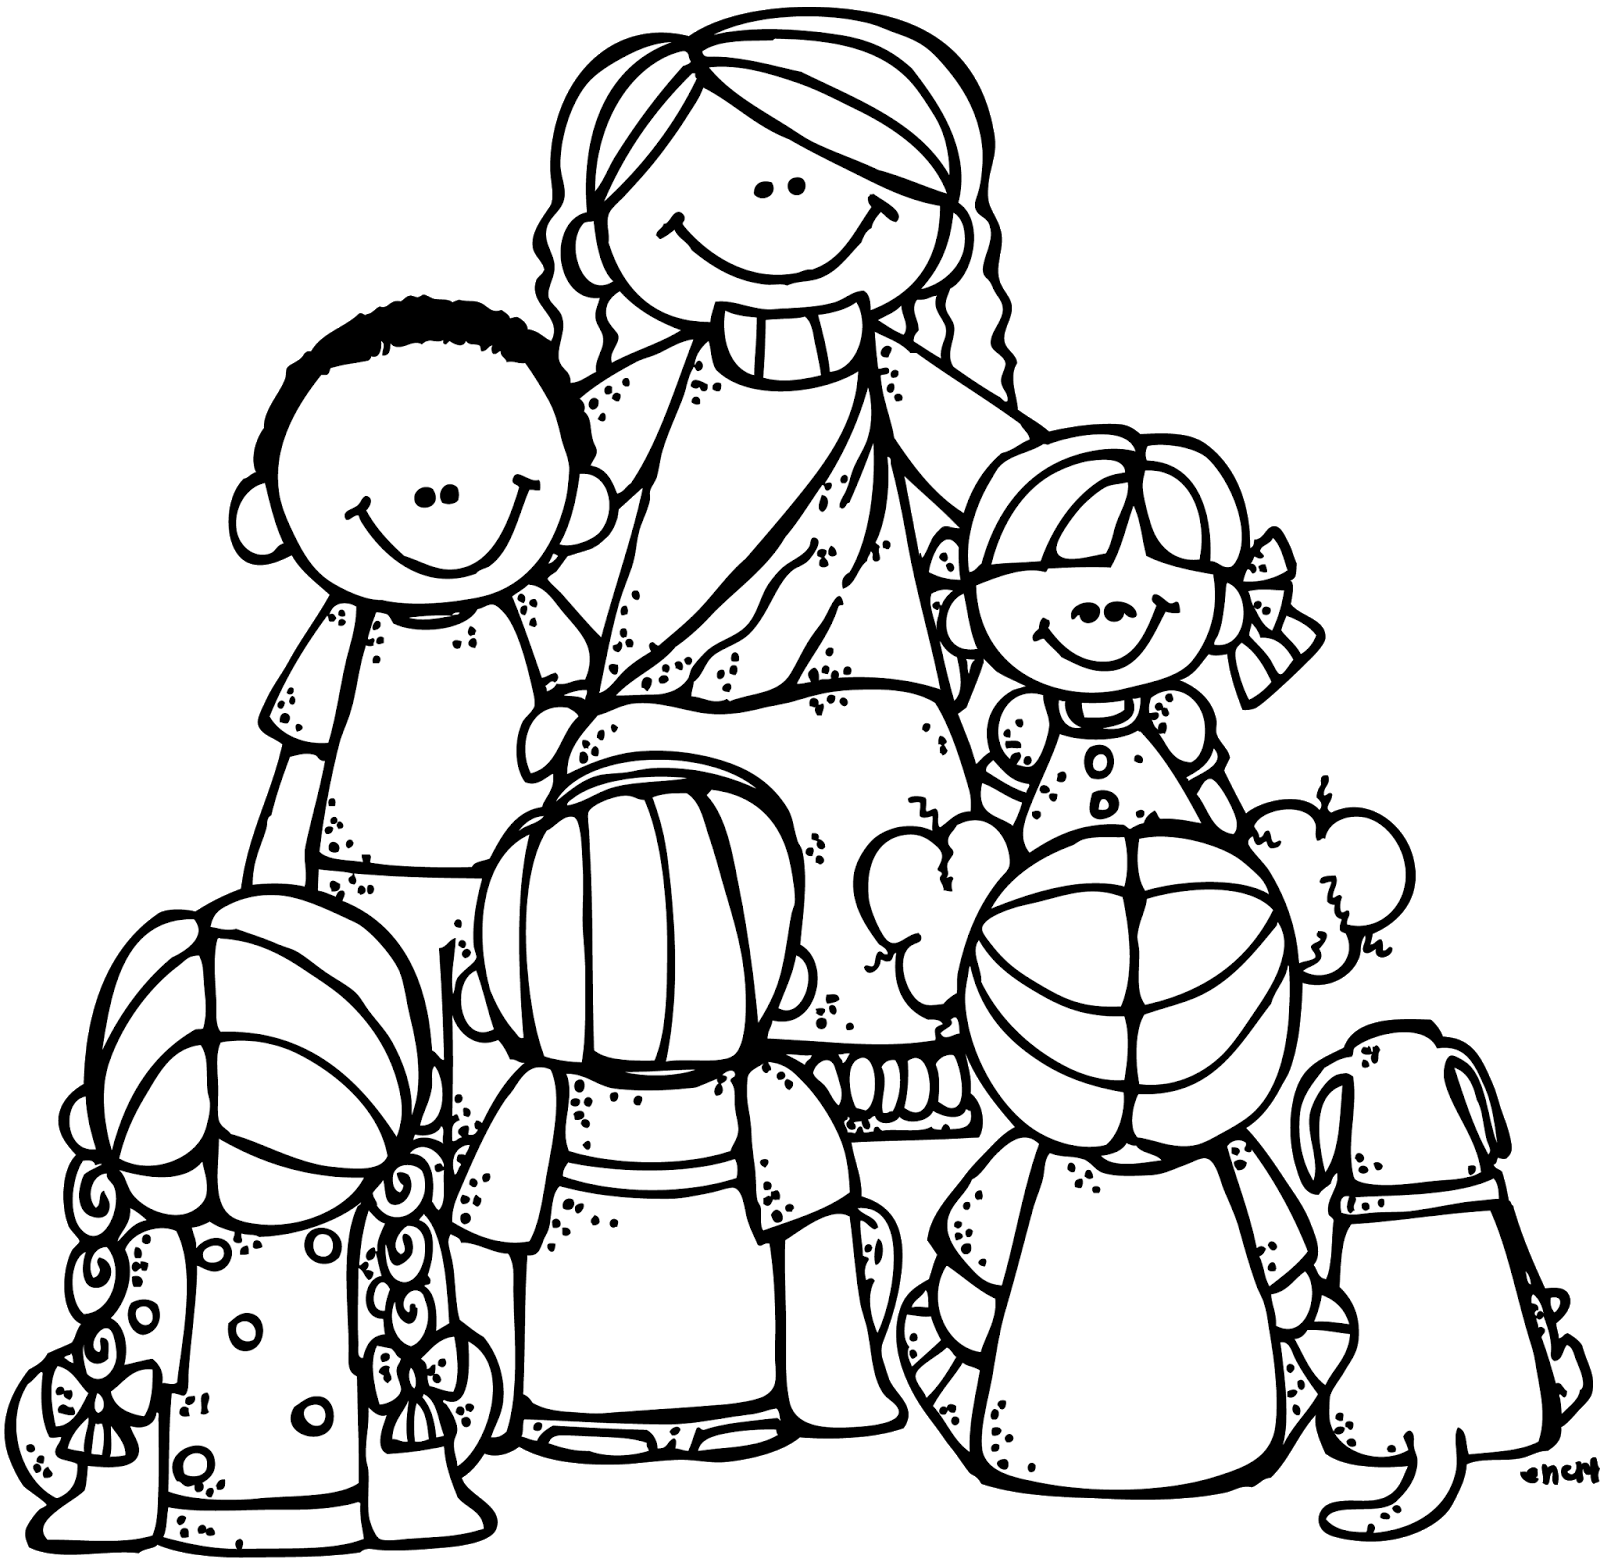 Melonheadz school clipart black and white picture black and white Melonheadz LDS illustrating: General Conference Goodies! | General ... picture black and white